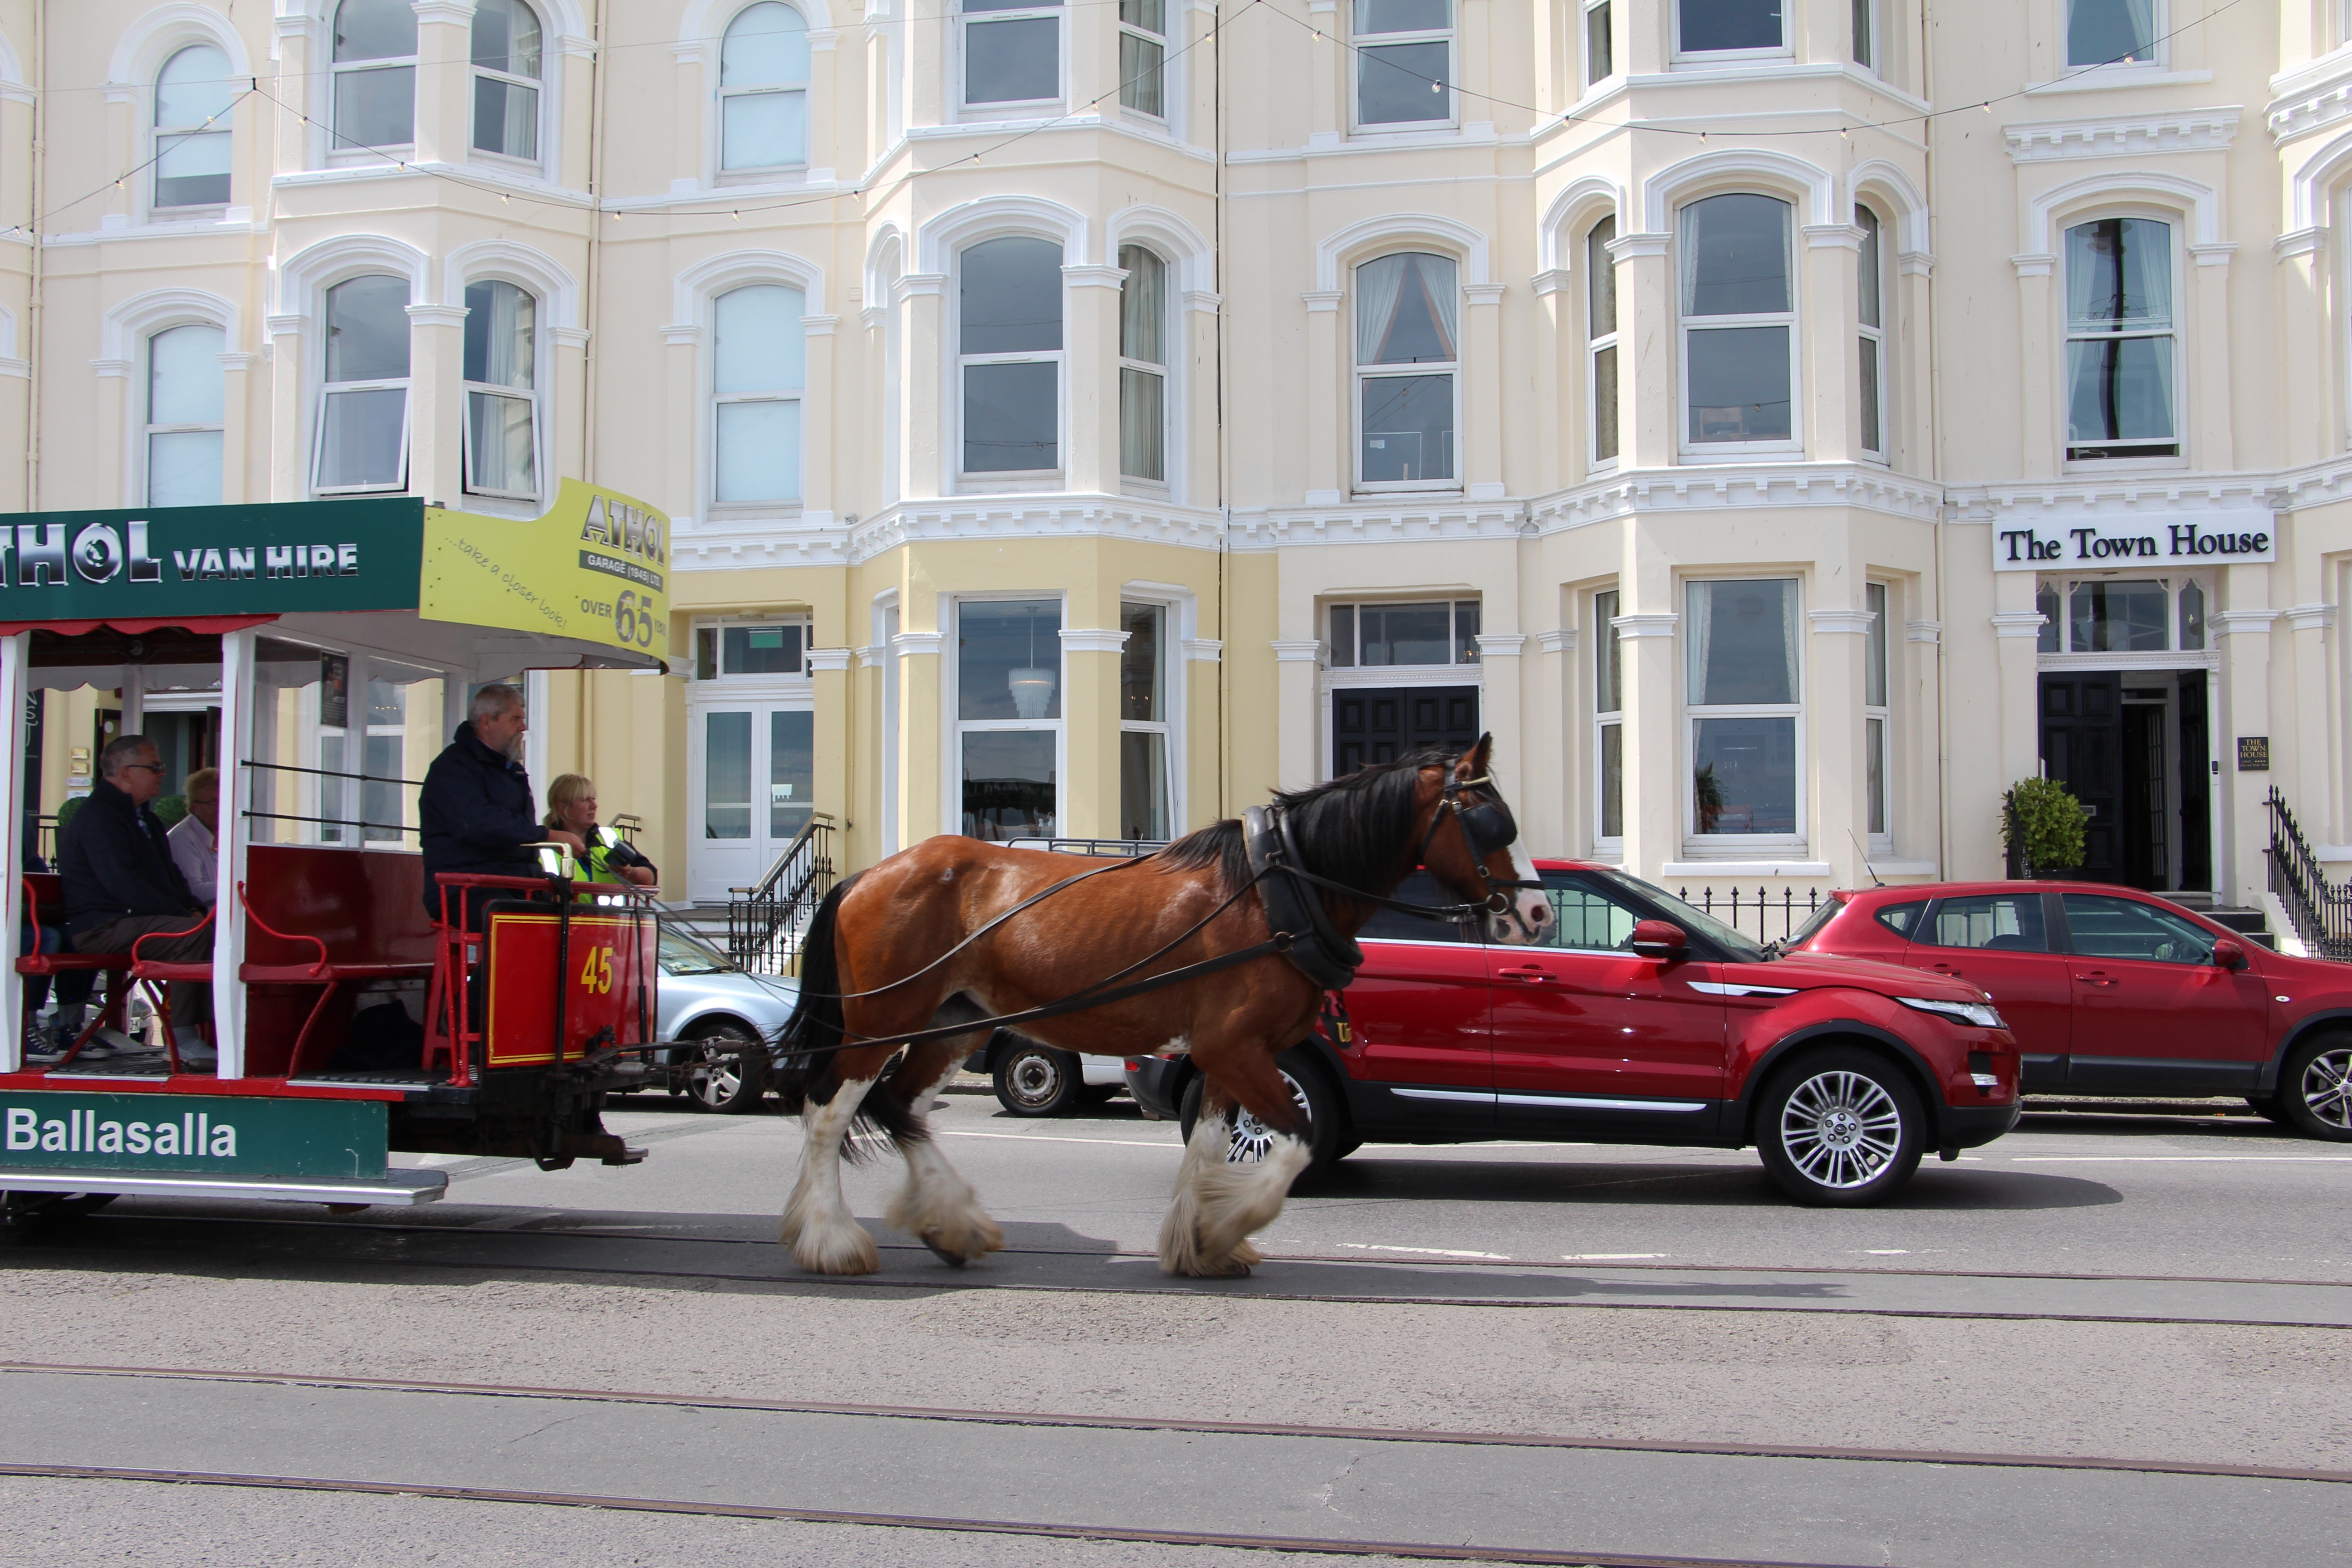 Horse tram down the Prom anyone?